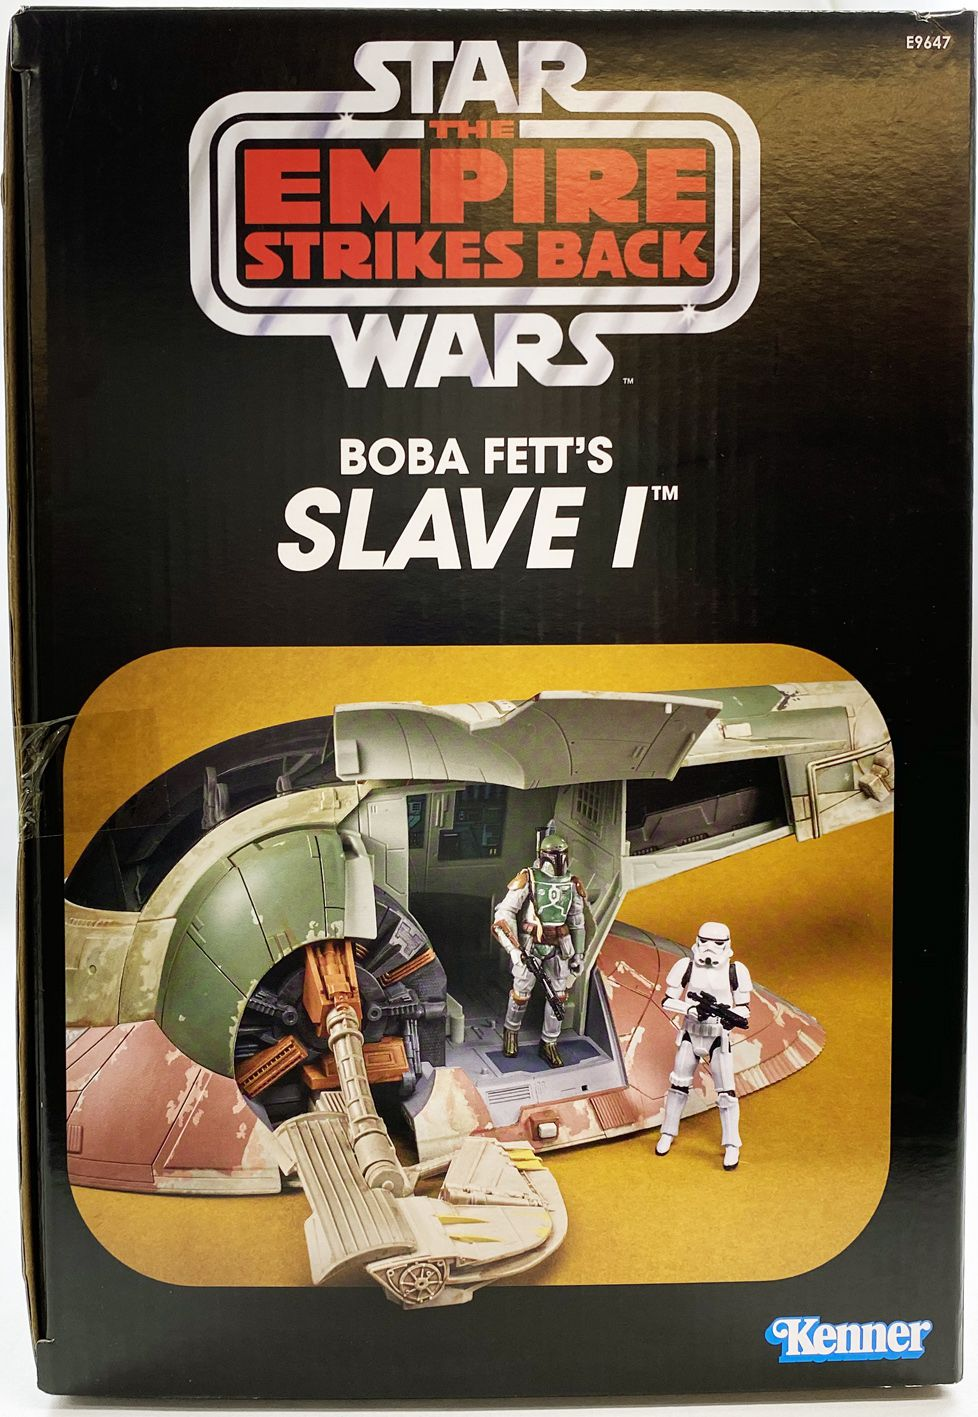 Star Wars (The Vintage Collection) - Hasbro - Slave 1 - The Empire Strikes Back